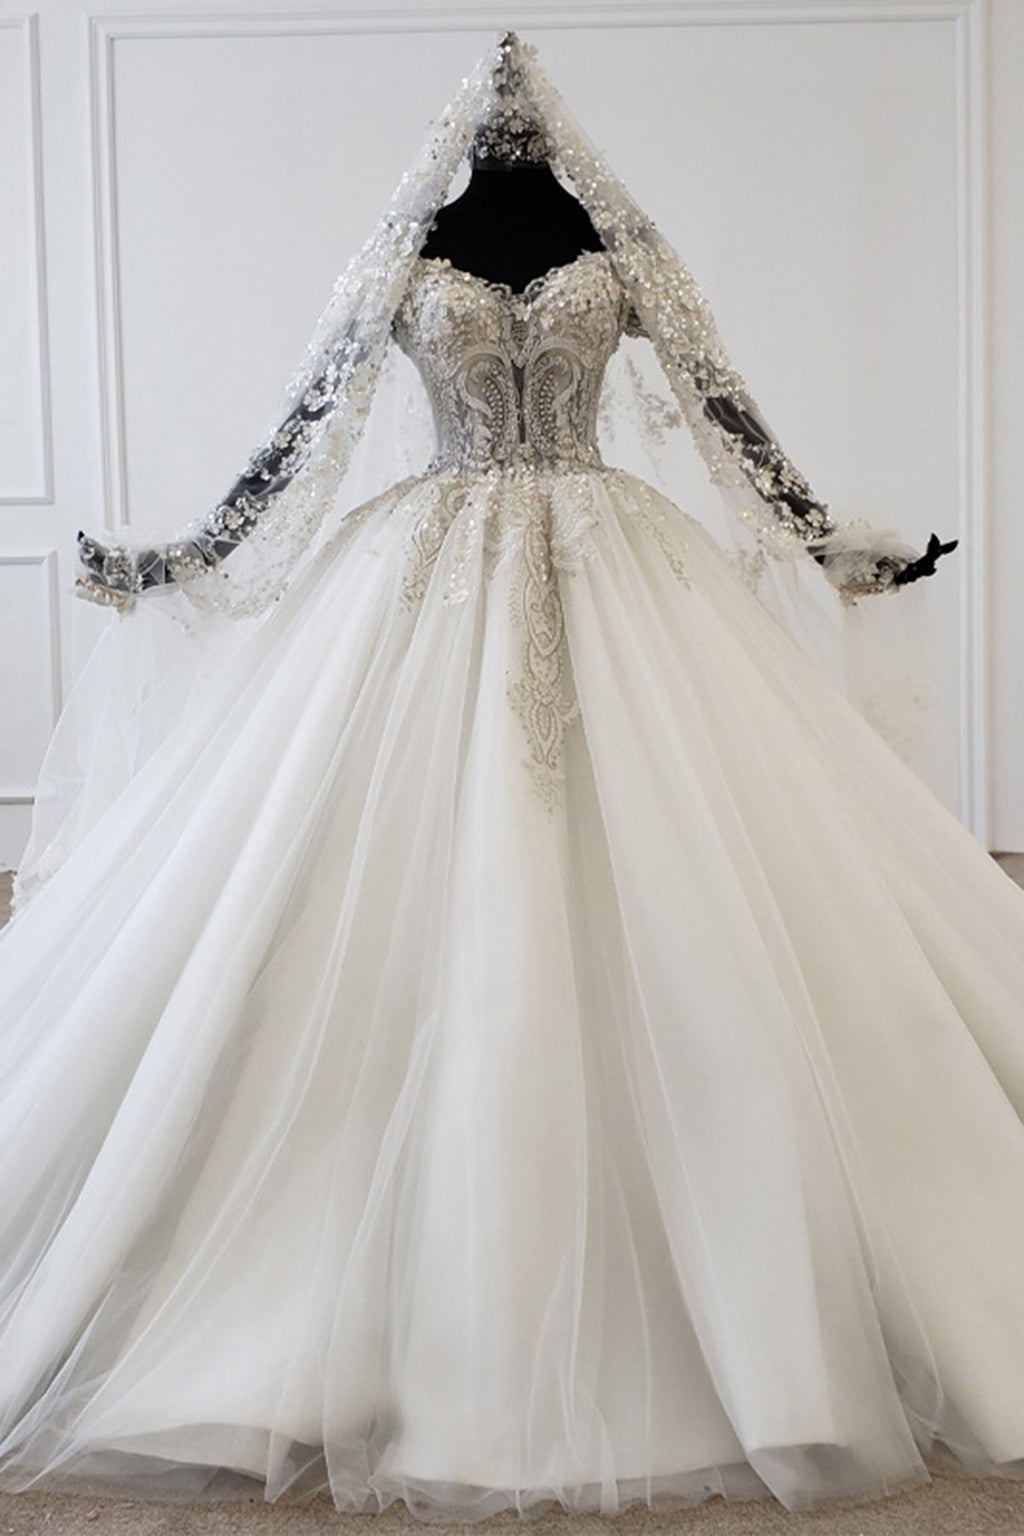 Luxury Handcrafted Applique Wmbroidery Lace Wedding Dresses Wedding Dress 2 100cm Cathedral Train